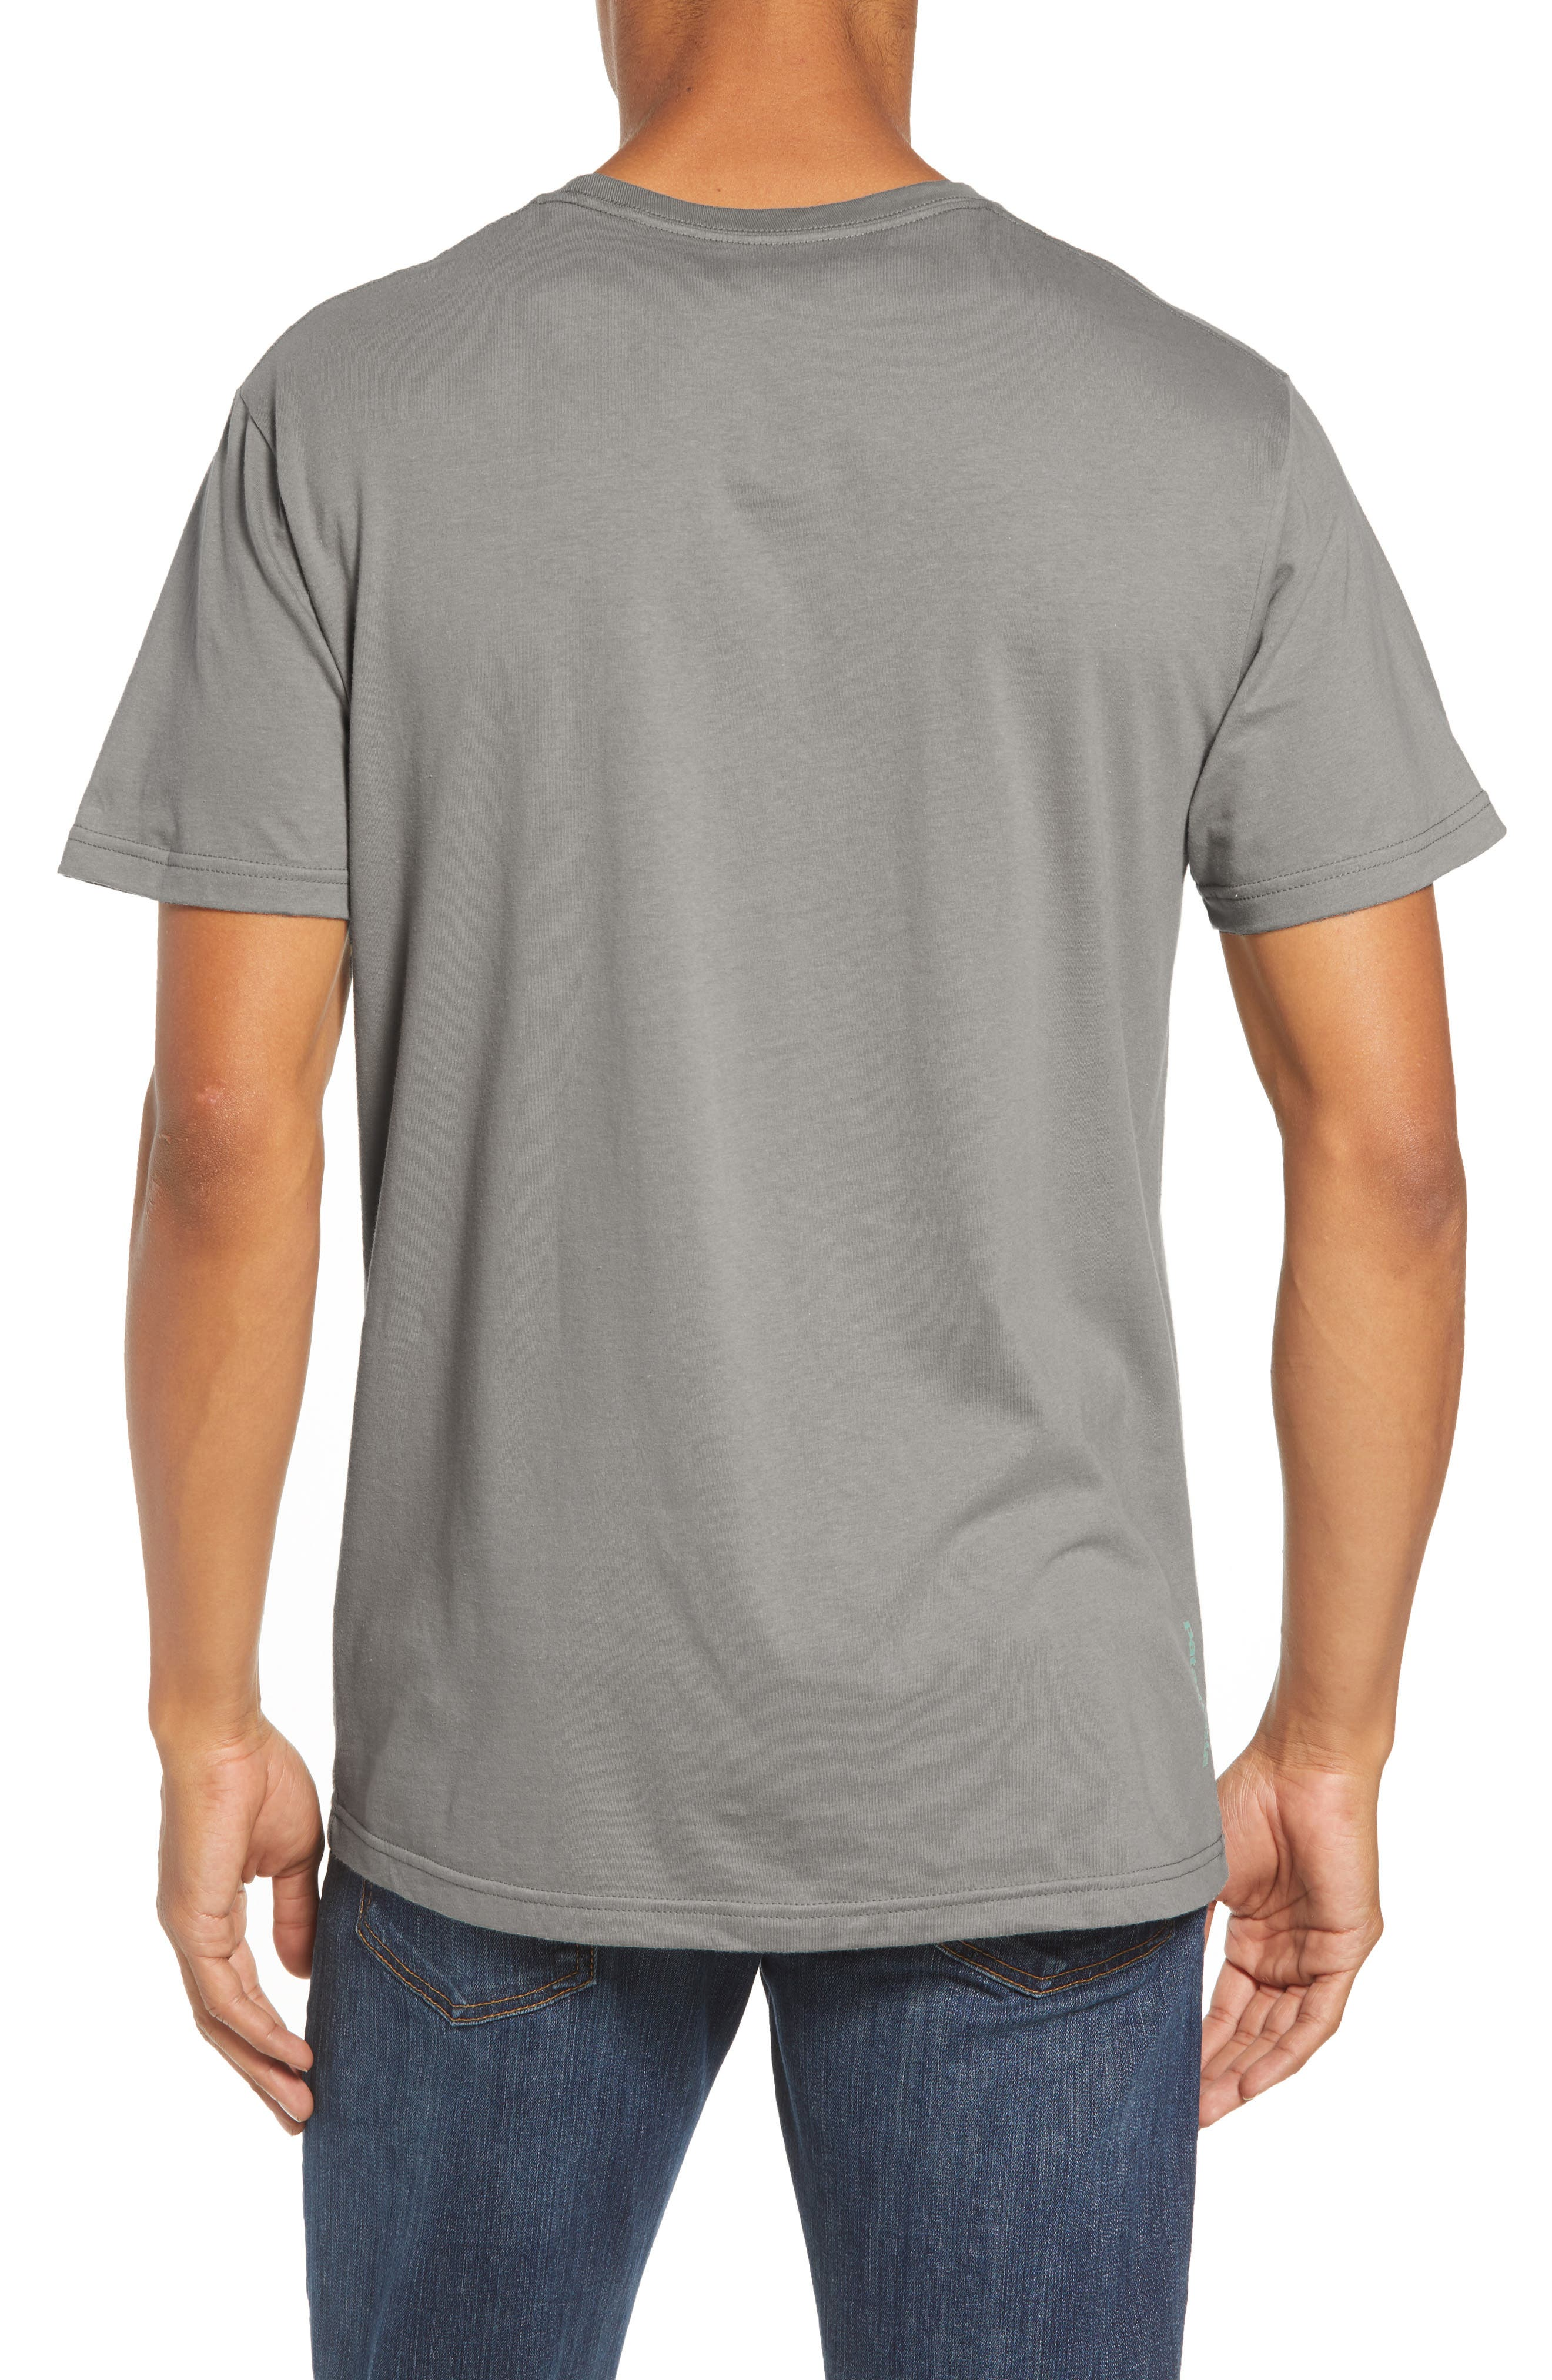 Save Our Rivers Organic Cotton Graphic T-Shirt,                             Alternate thumbnail 2, color,                             FEATHER GREY